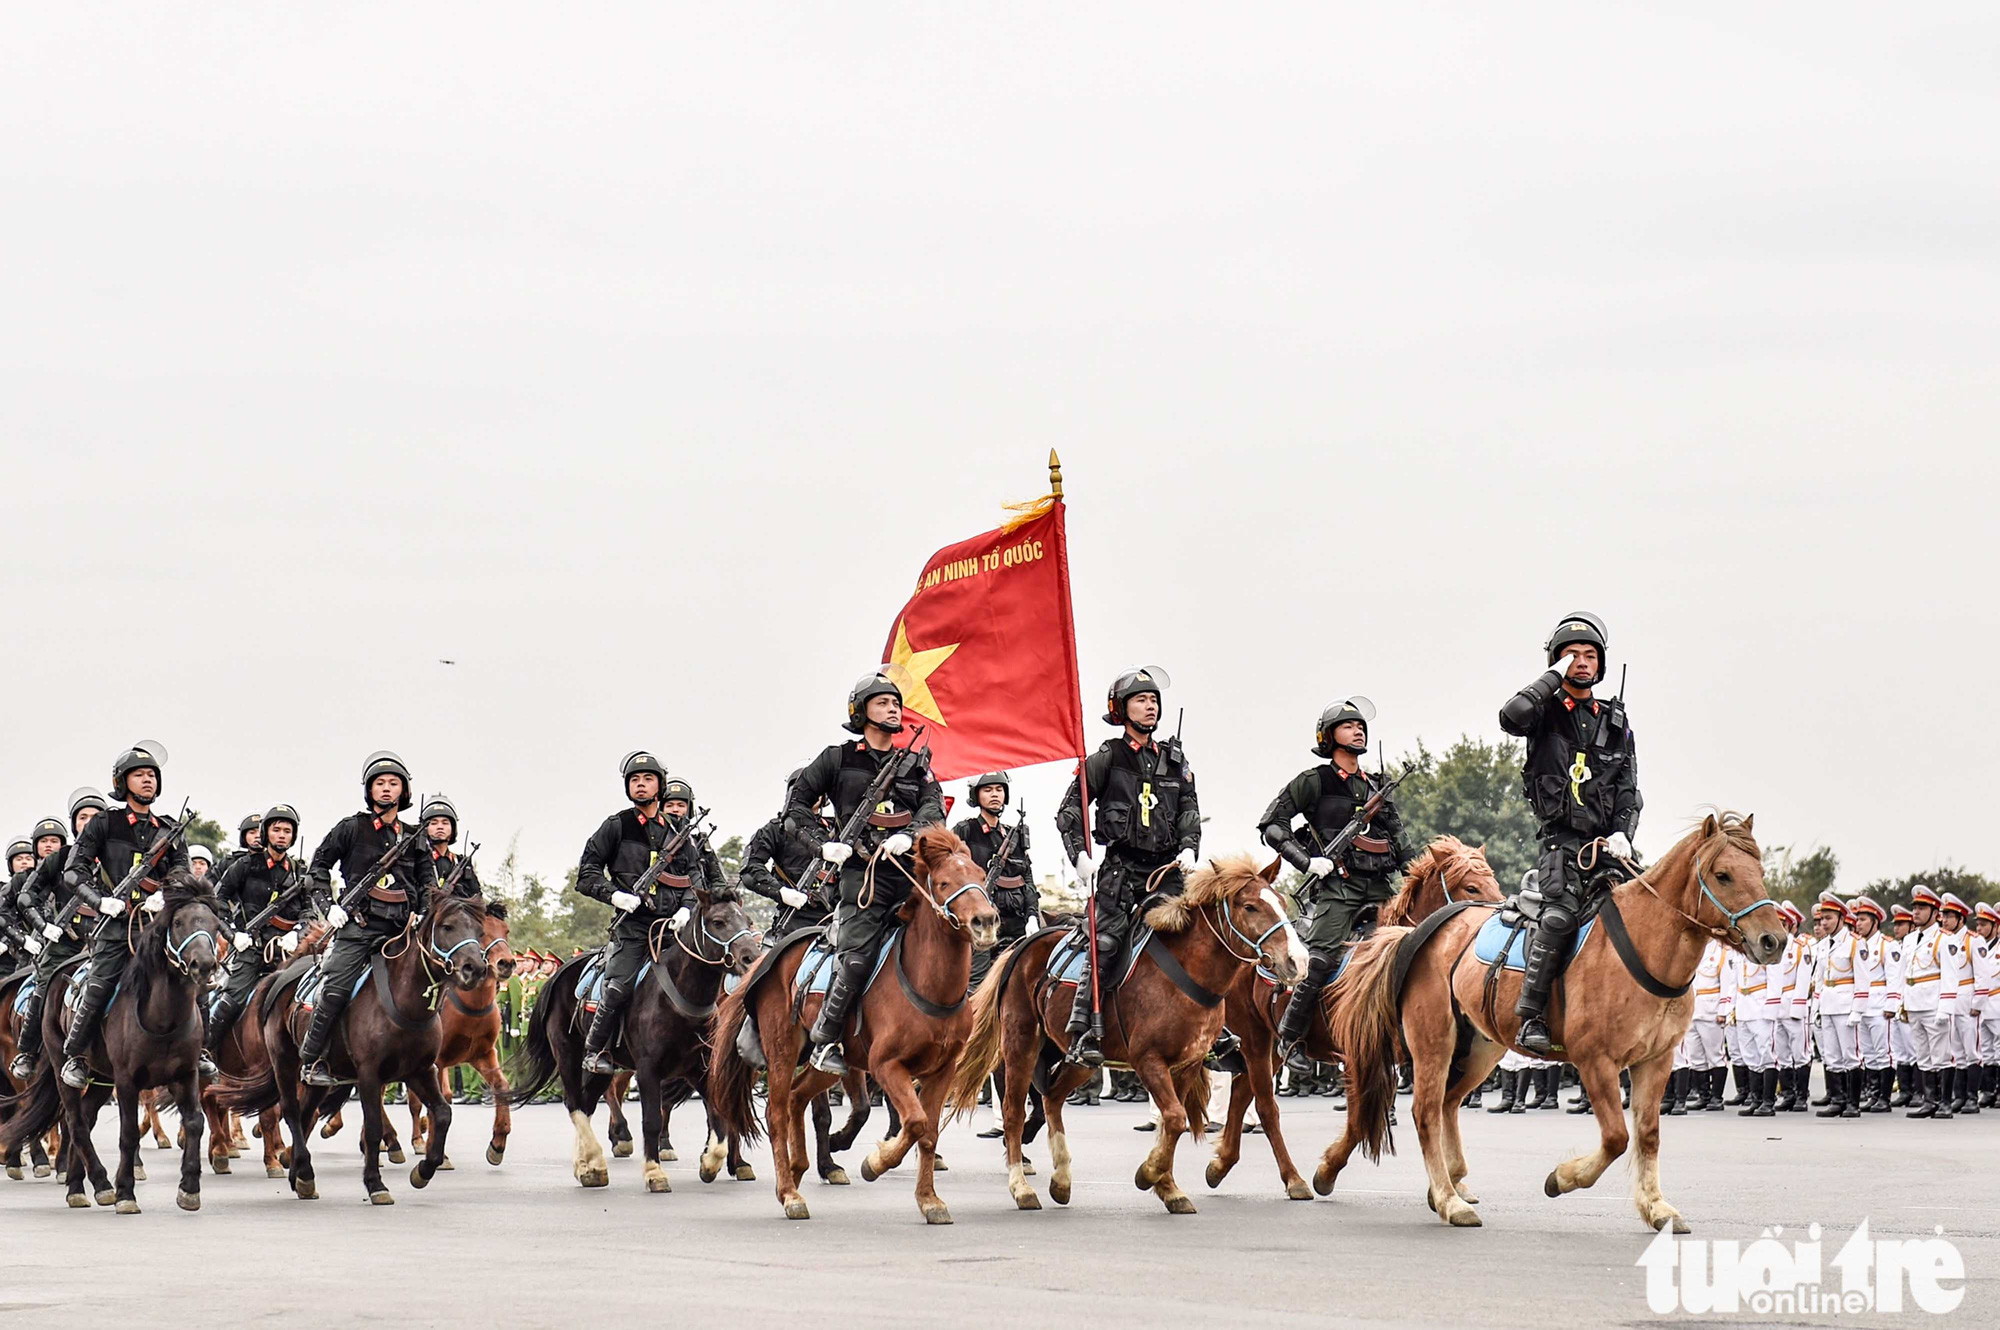 Mounted police force at the parade in Hanoi, January 10, 2021. Photo: Quang Minh / Tuoi Tre